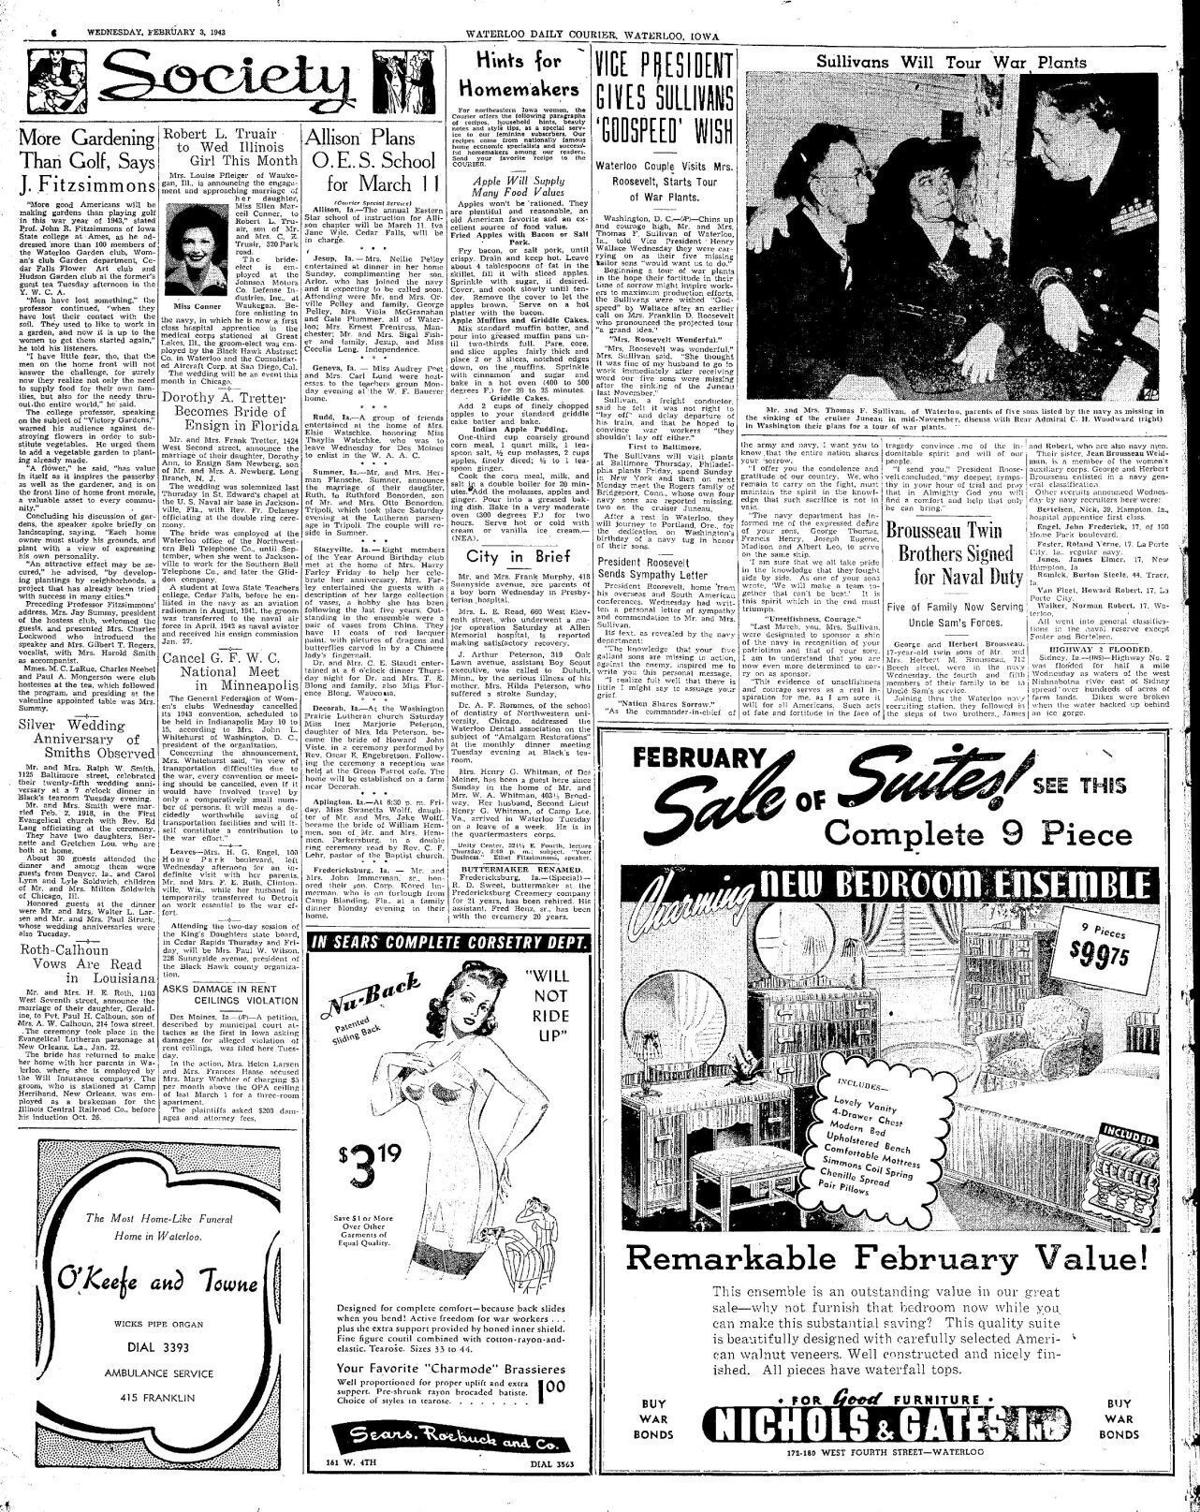 Courier Feb. 3, 1943